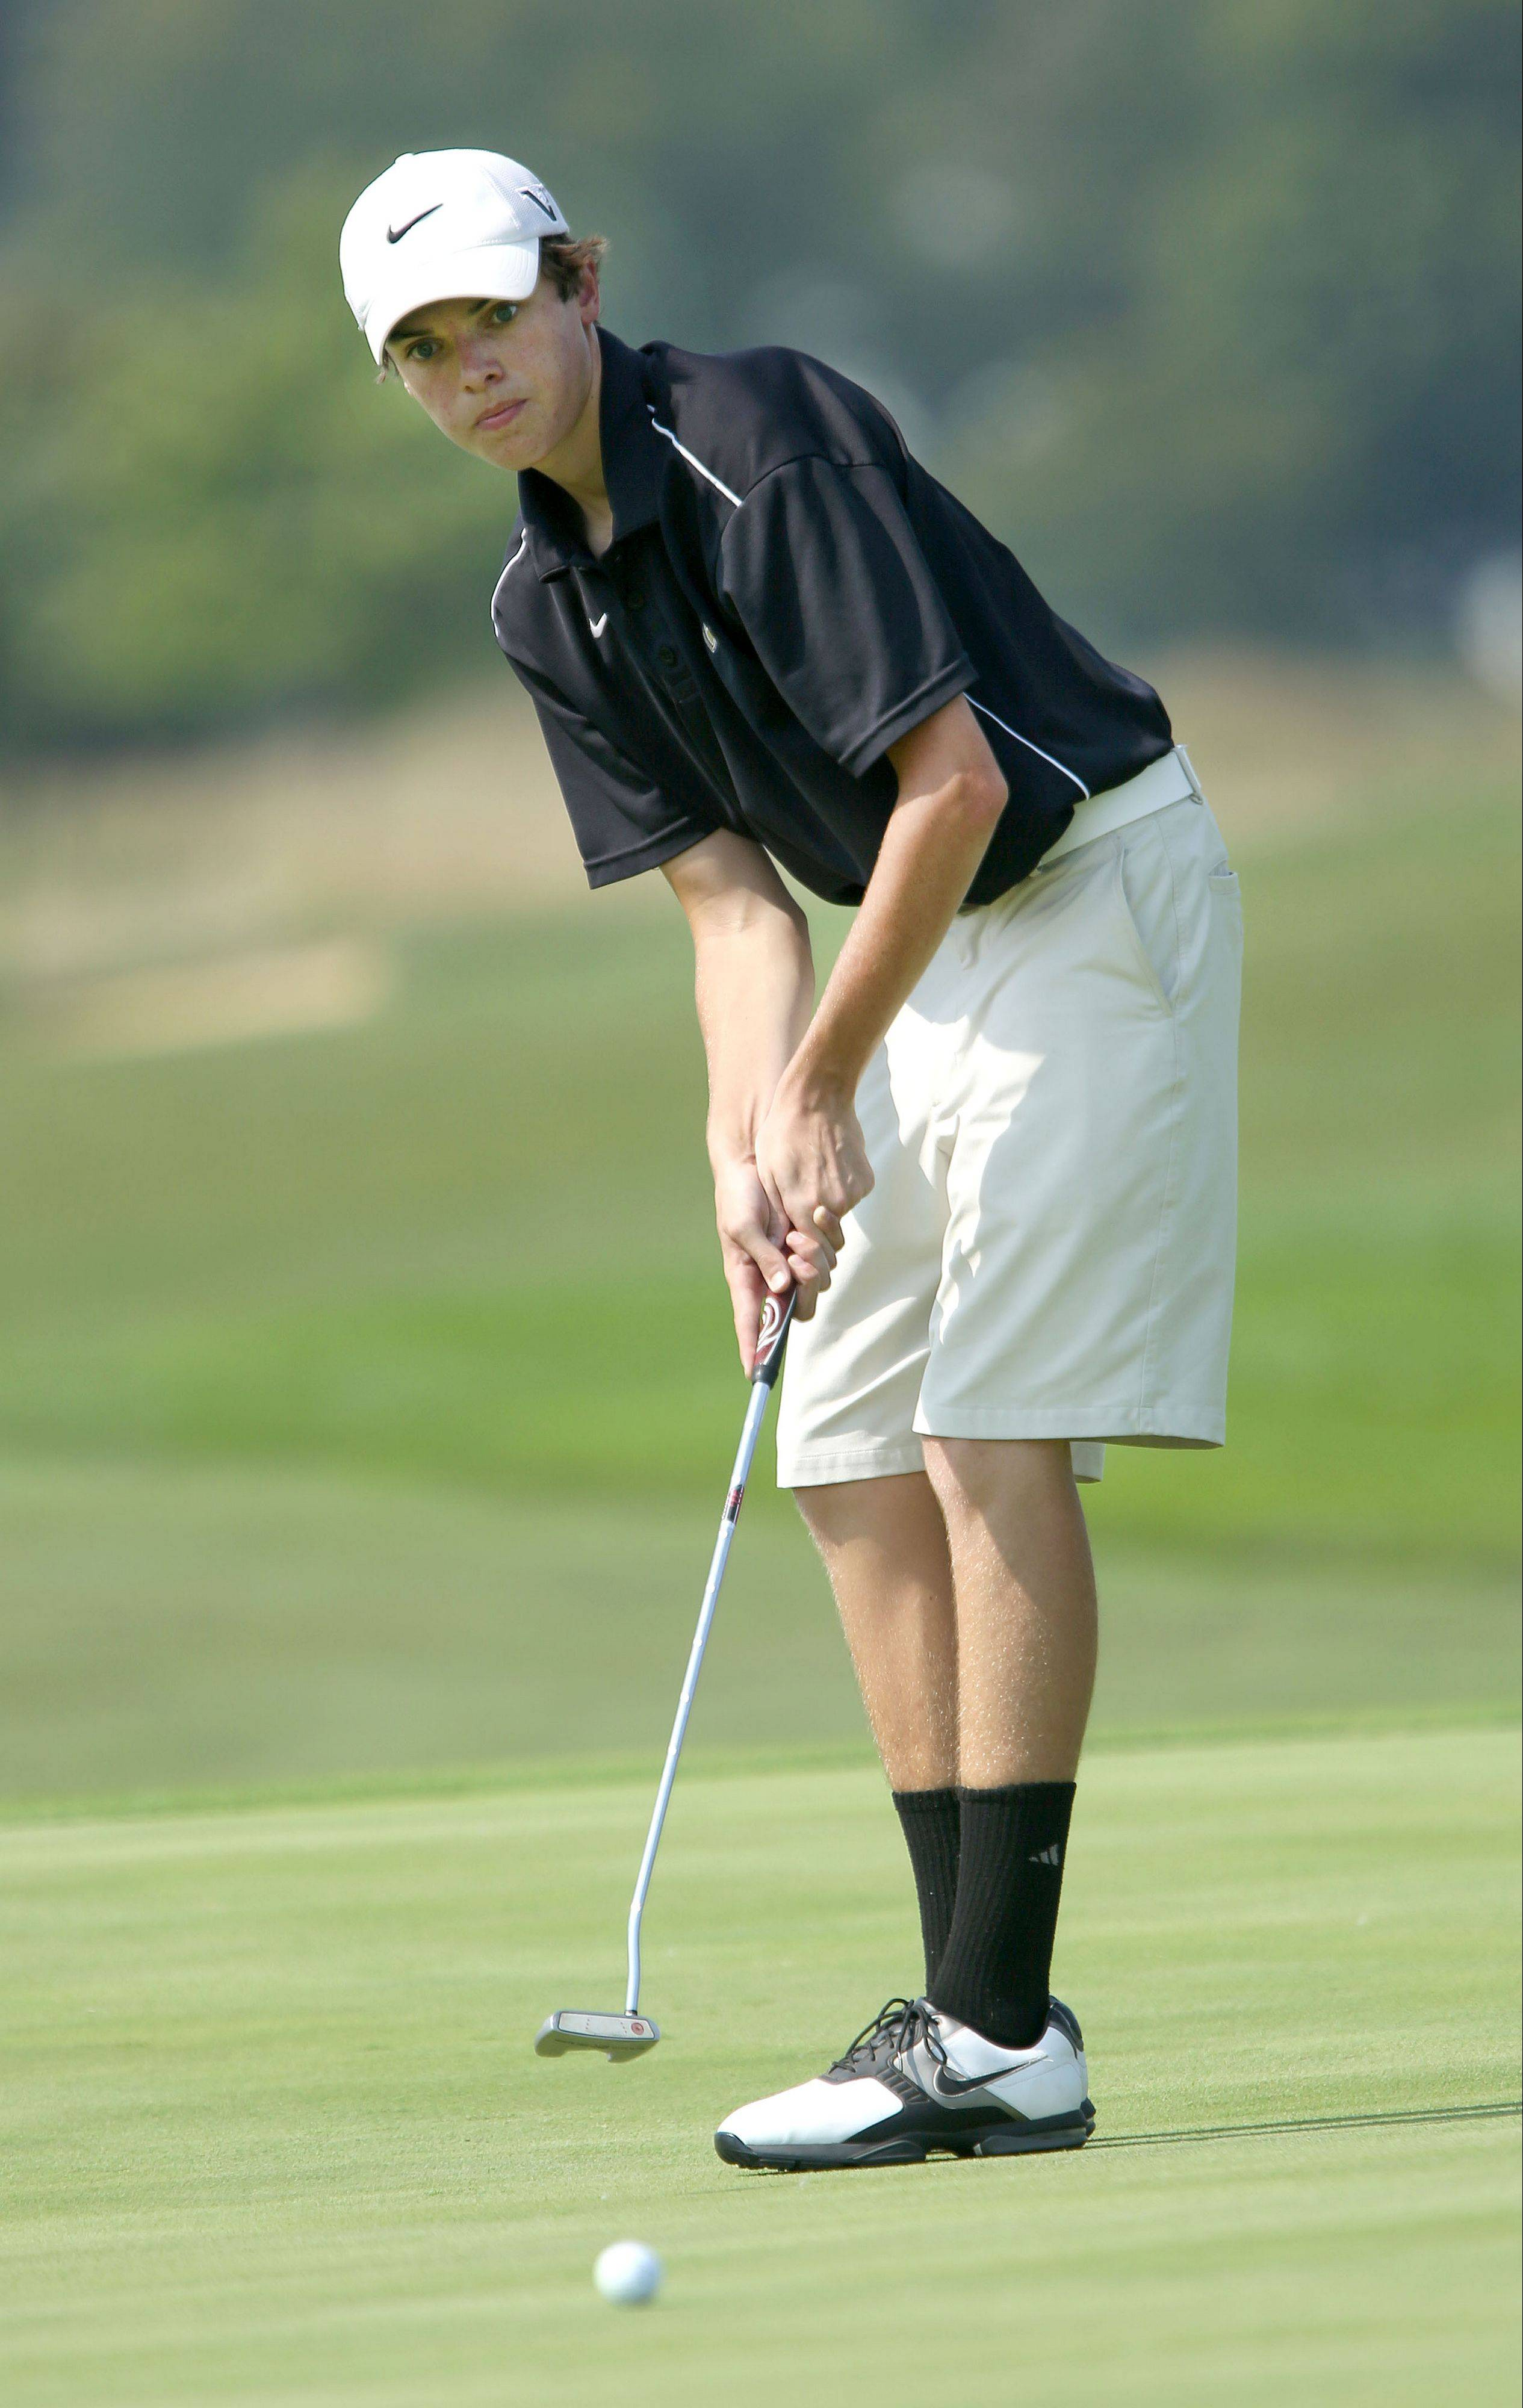 Grayslake North senior Kyle Sagendorph putts on No.8 during the Warren Open boys golf tournament at the Merit Club in Libertyville on Monday.